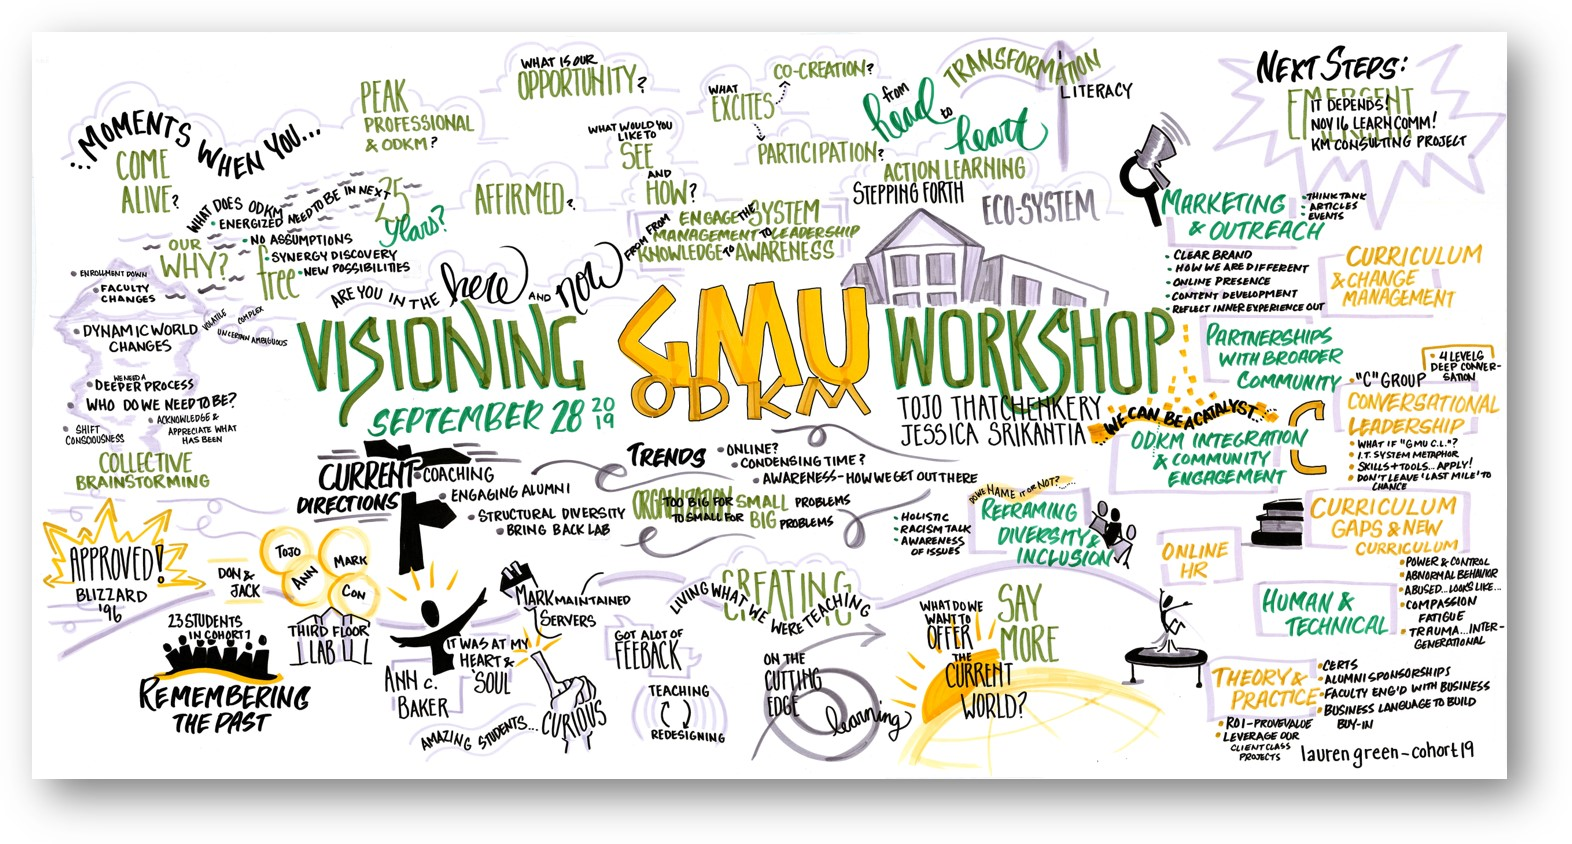 Visual notes from a day long participatory visioning session for an organization development graduate program.